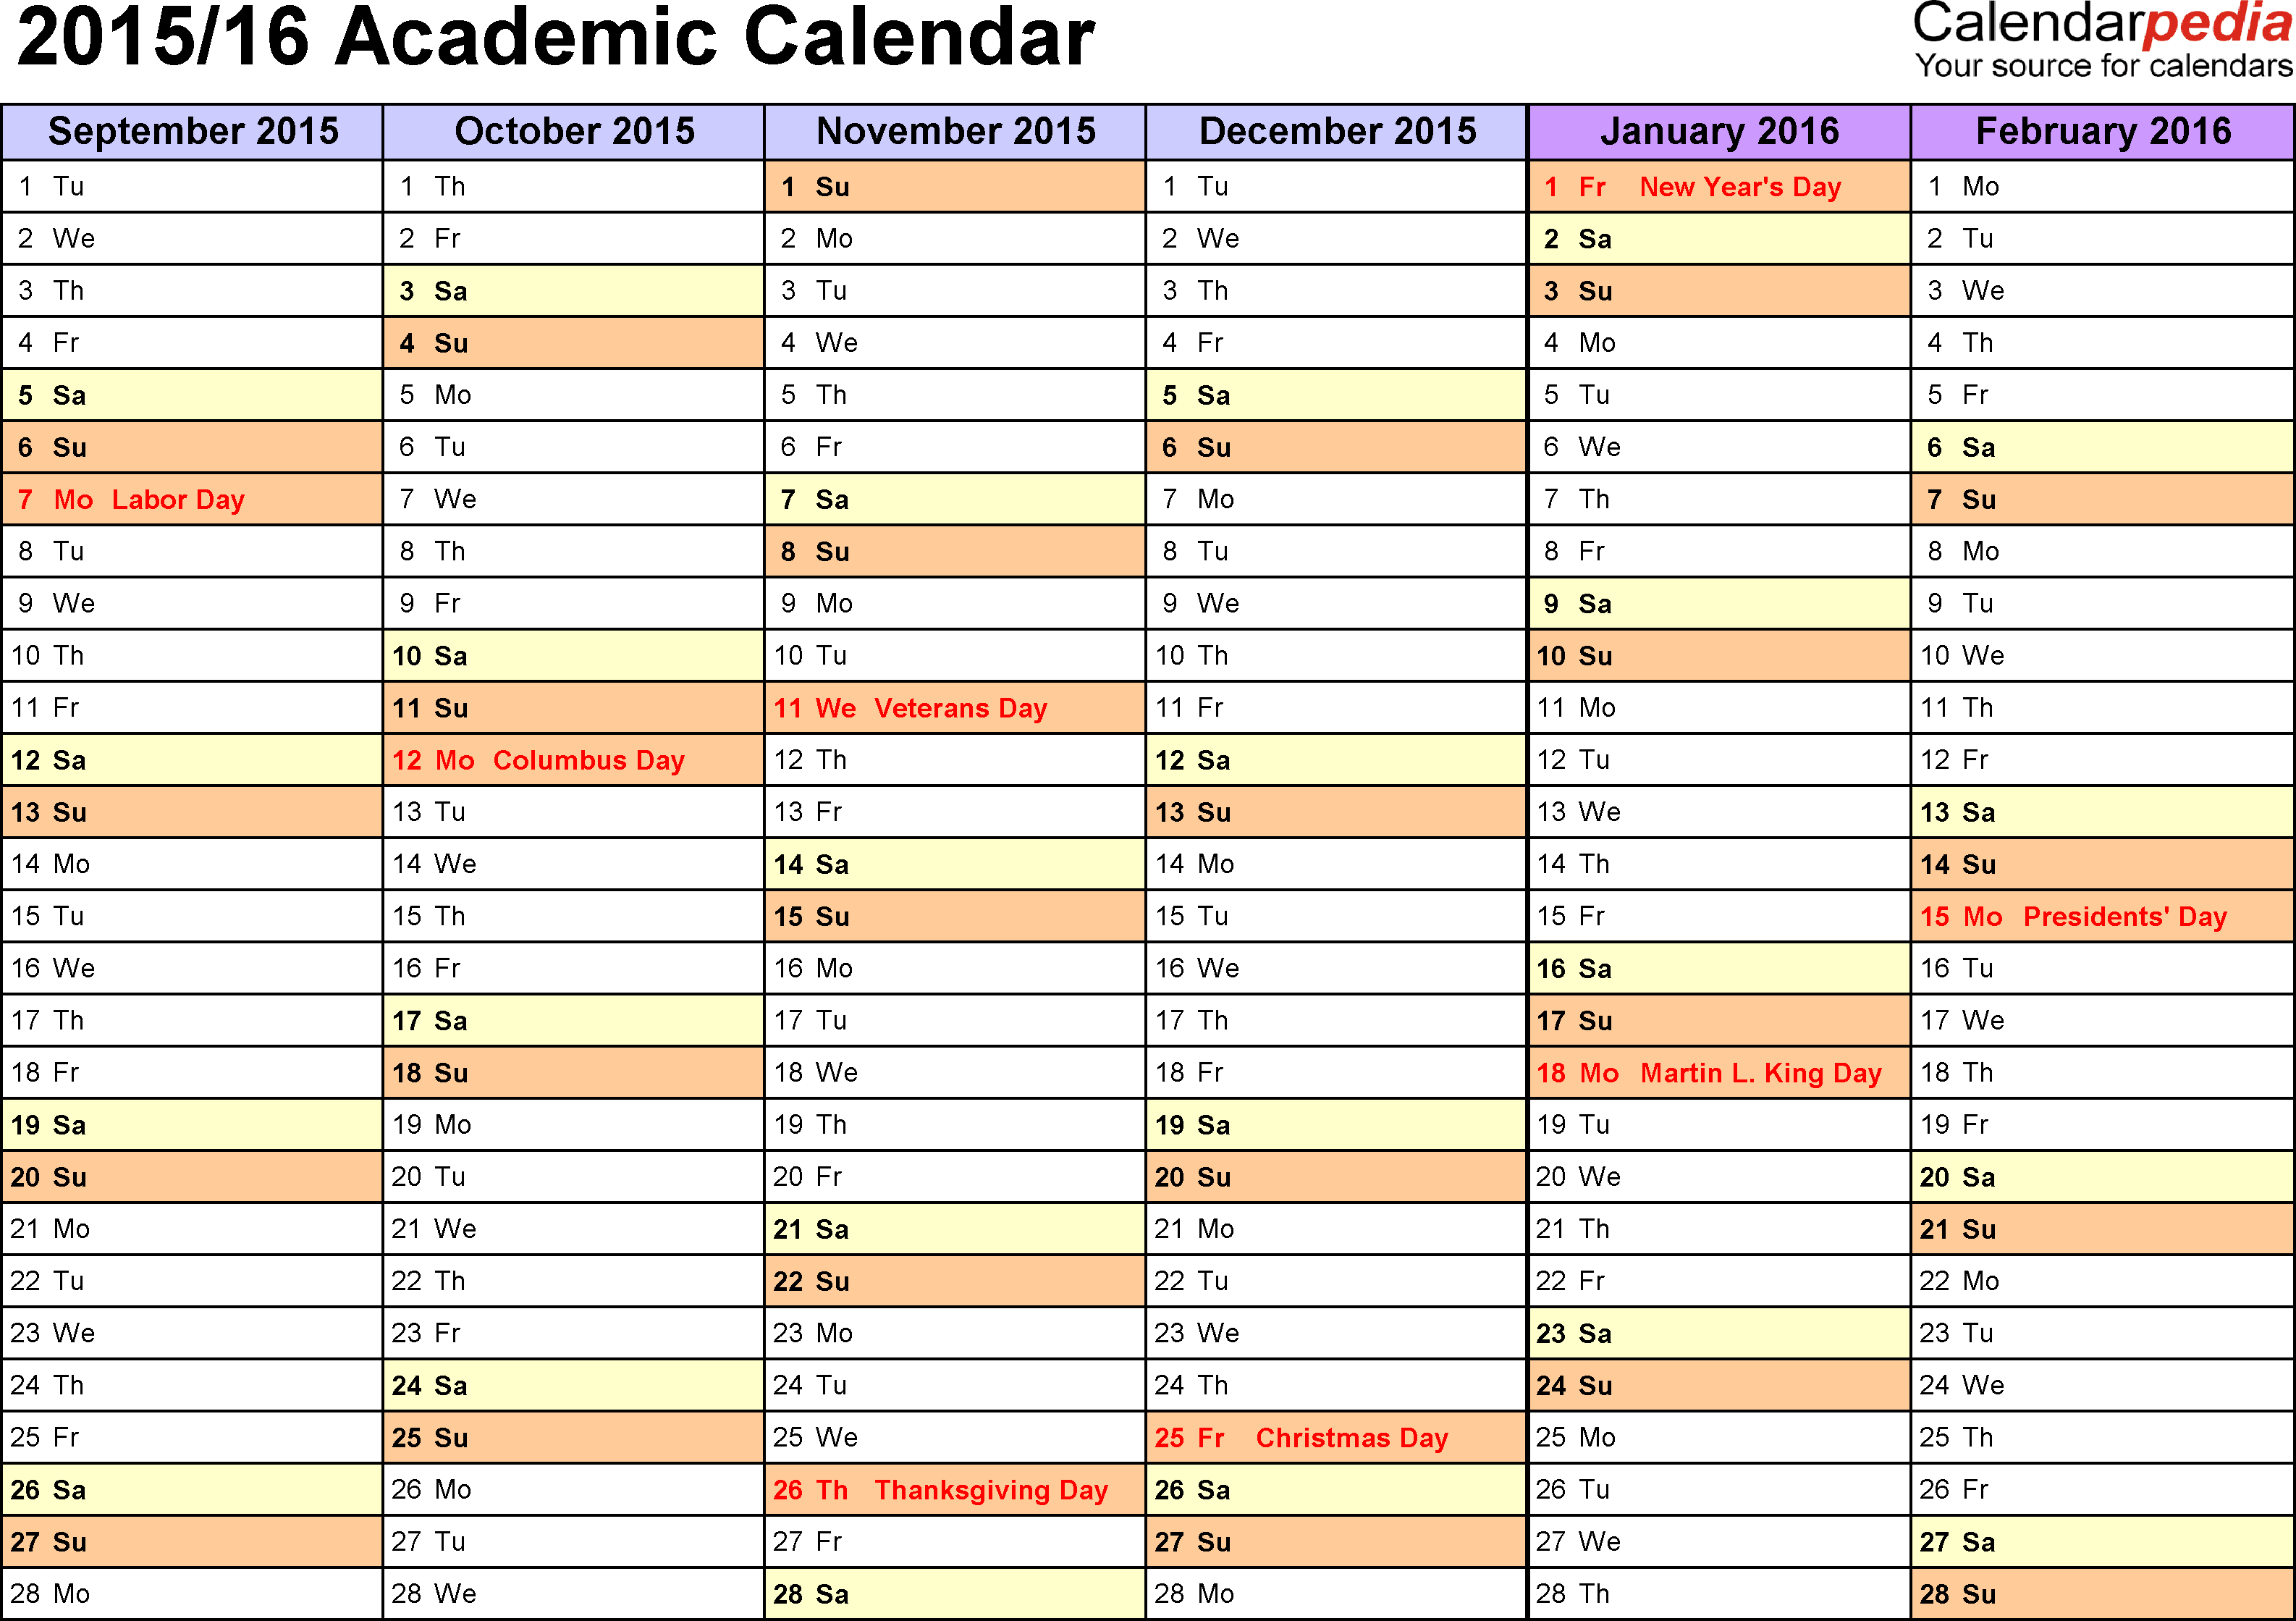 Download Template 2: Academic calendar 2015/16 in PDF format, landscape, 2 pages, half a year per page